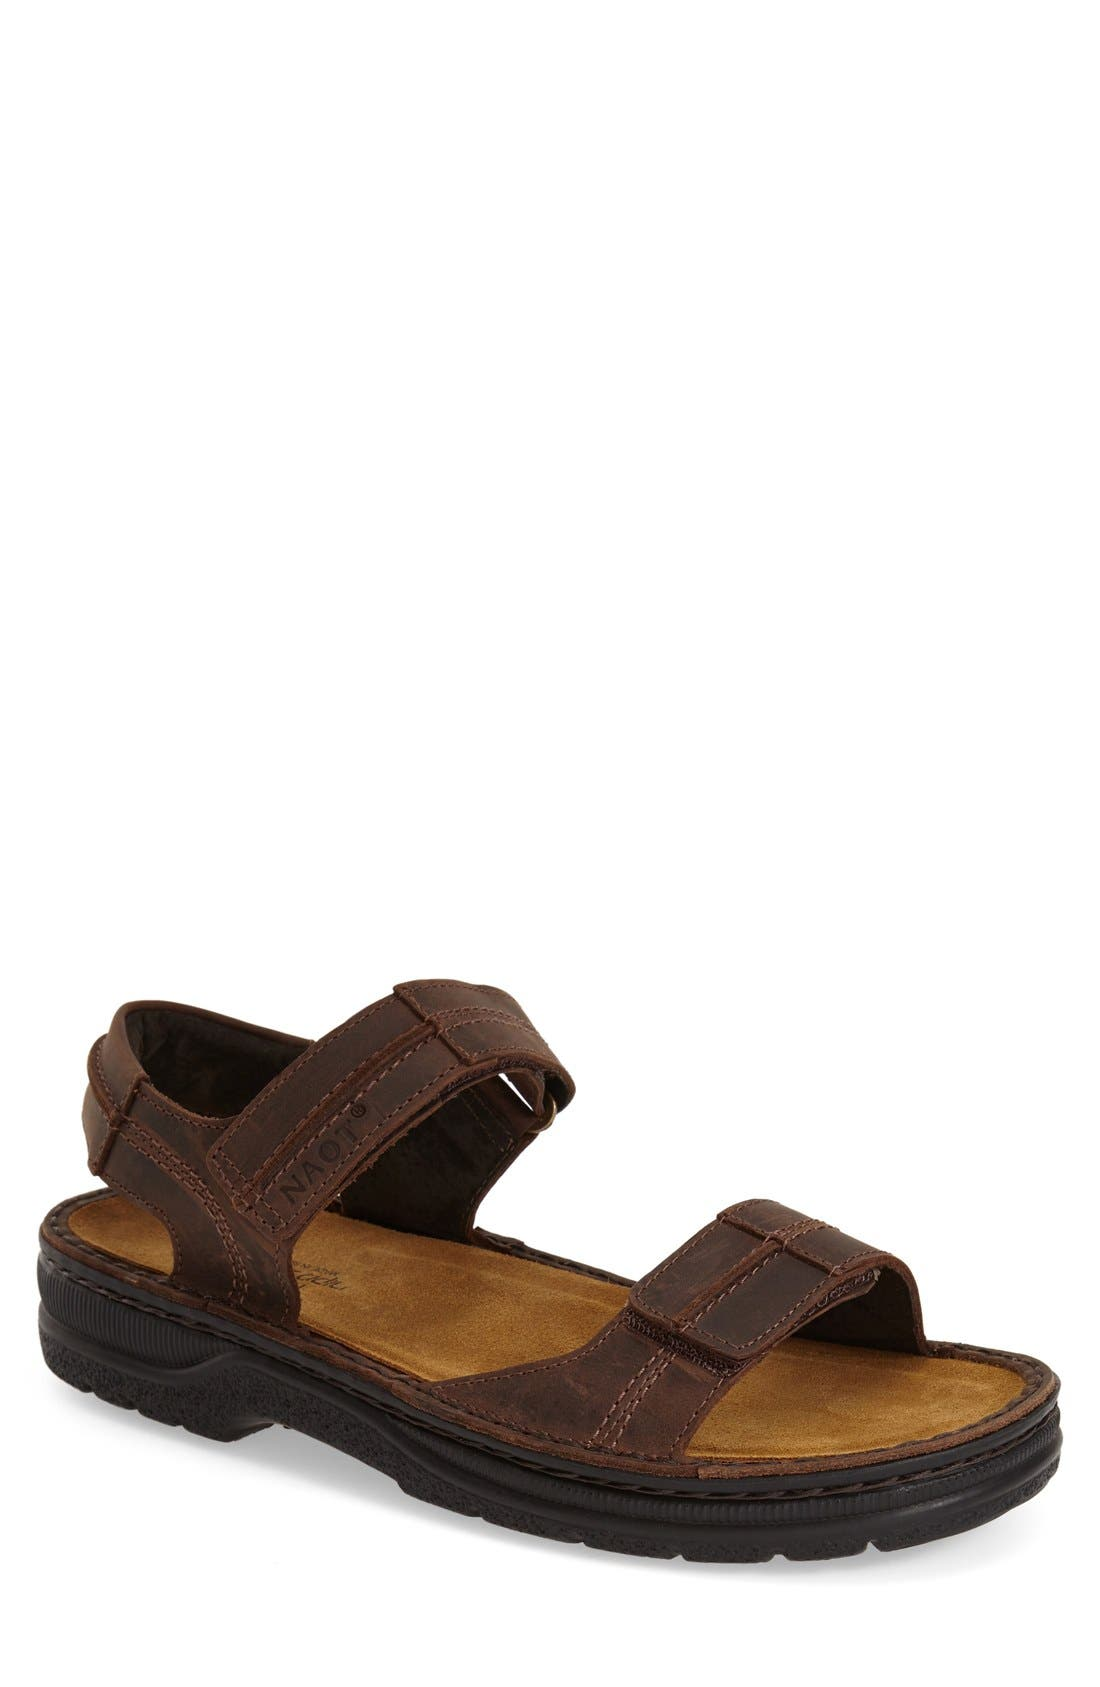 Balkan Sandal,                         Main,                         color, 201